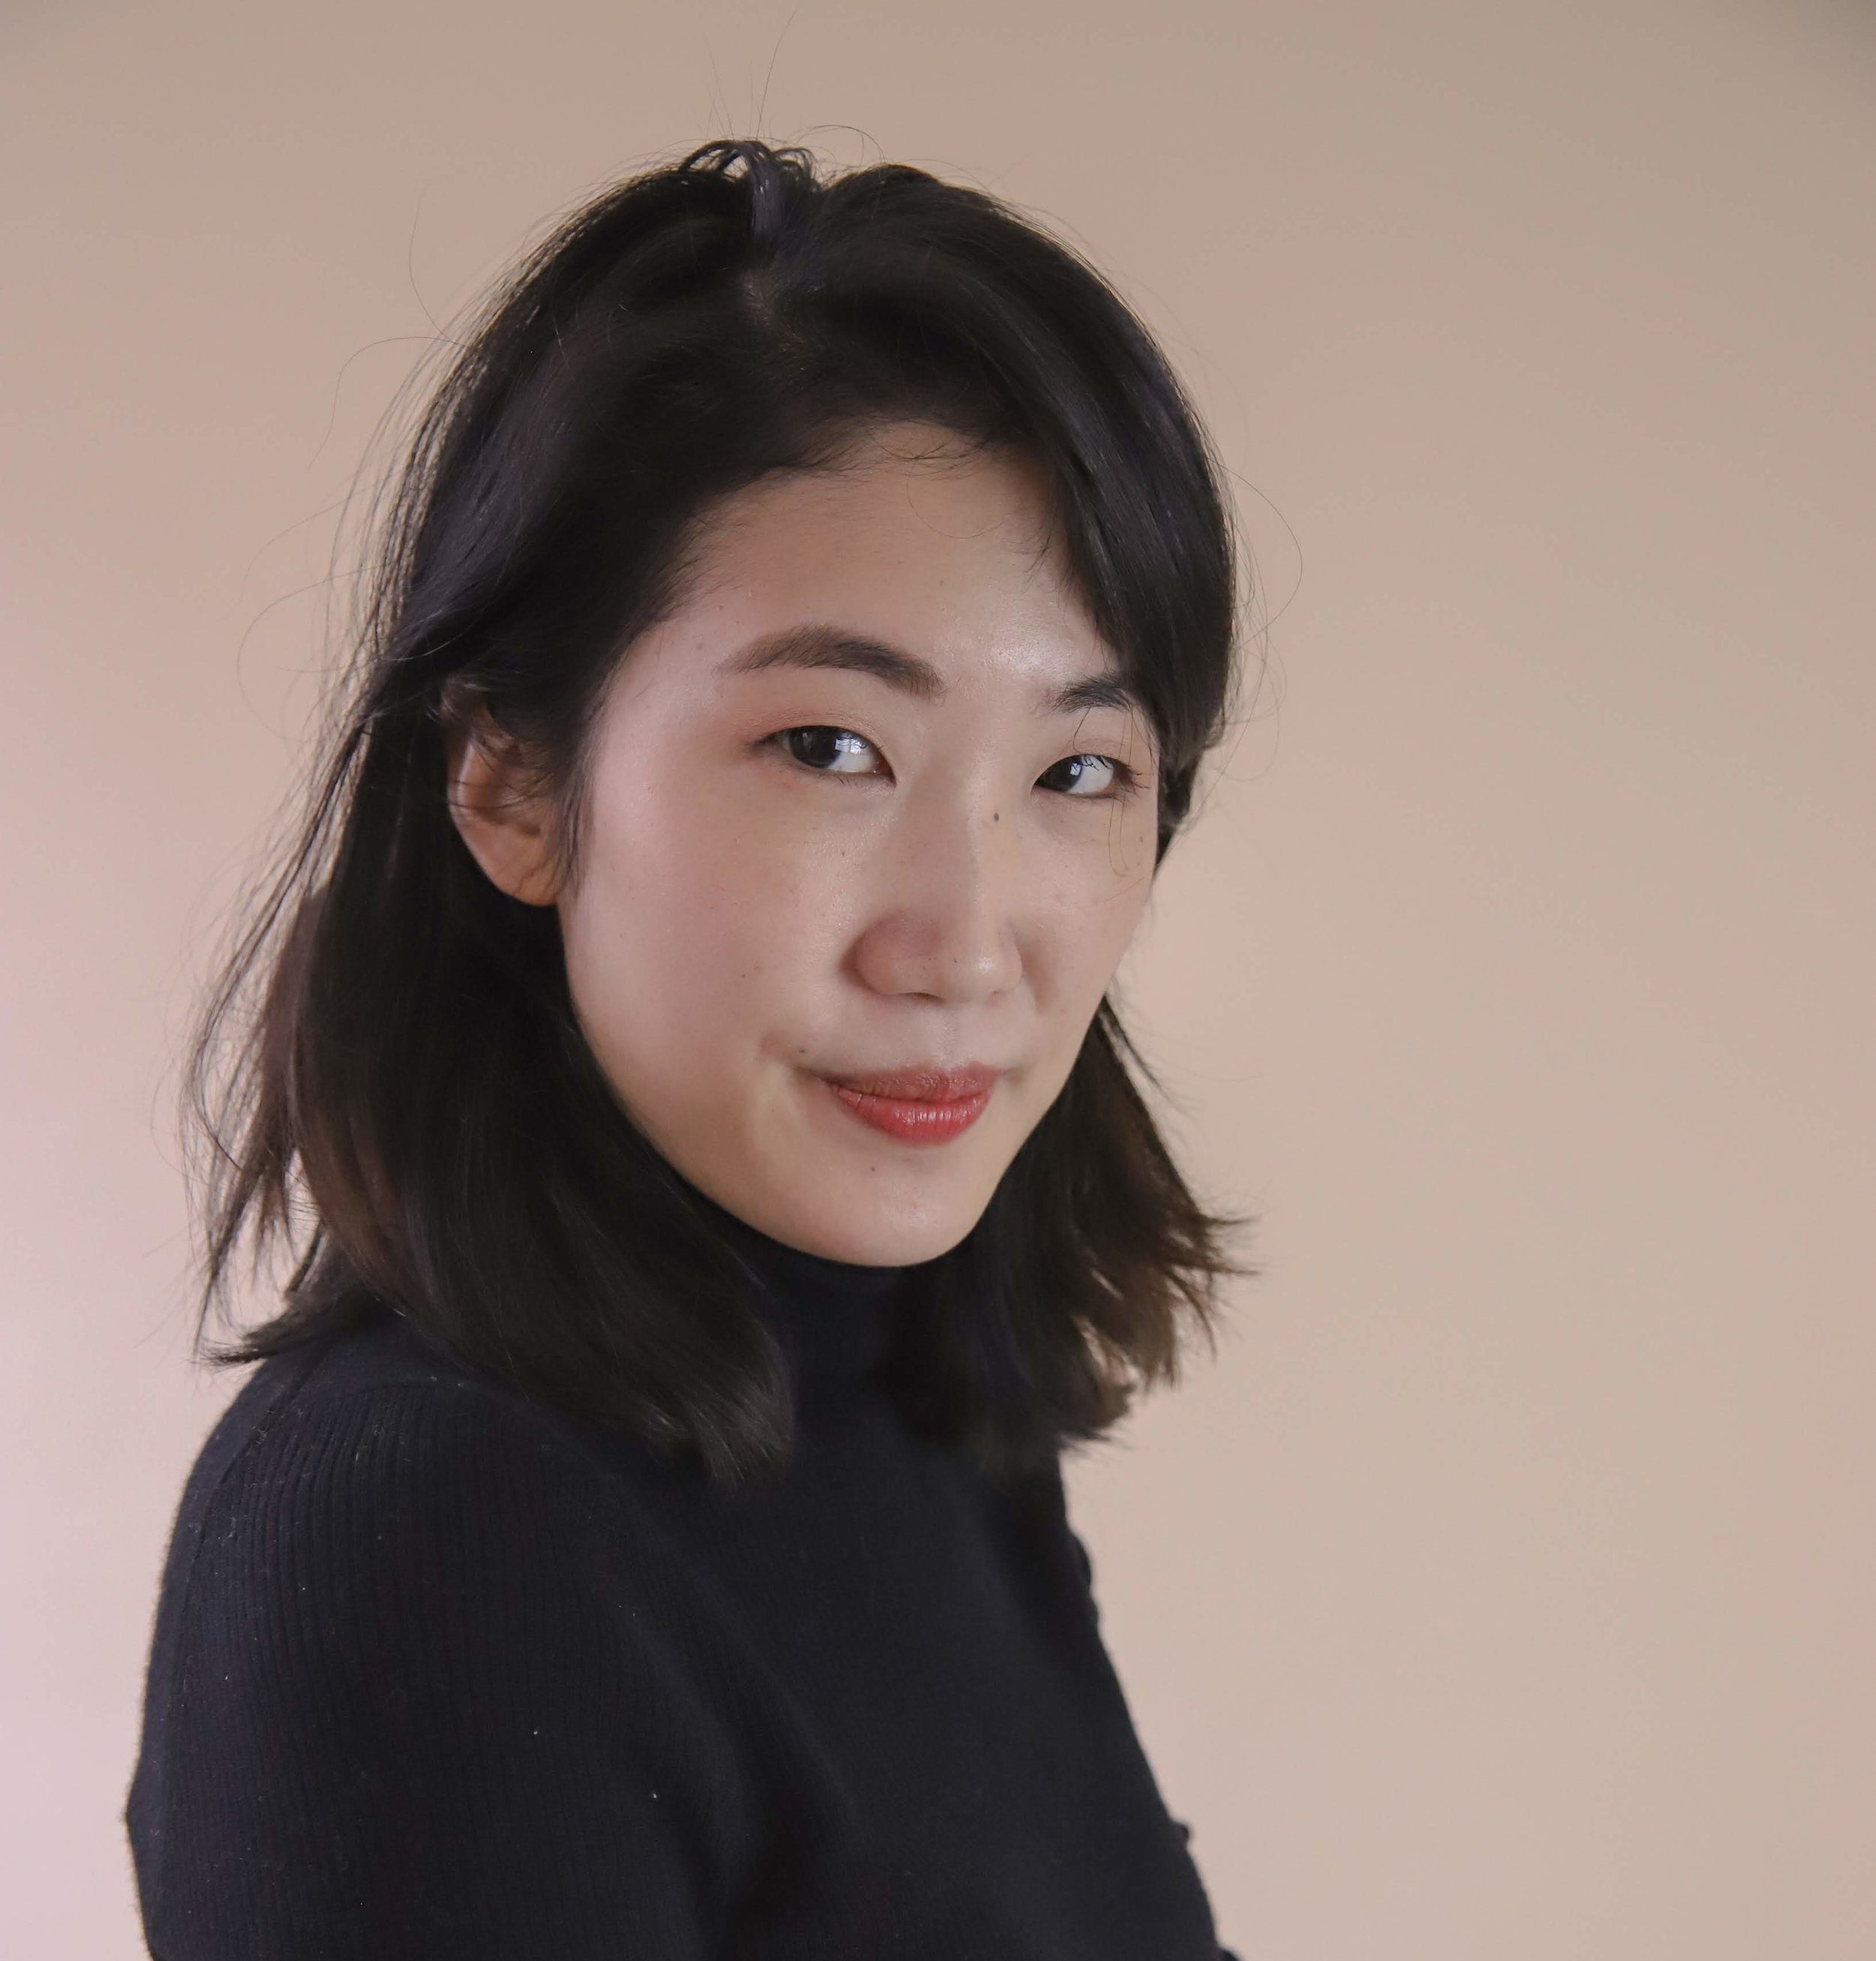 Yurina Yoshikawa is a writer, editor, and writing instructor who moved to Nashville in 2017 after ten years of living in NYC. She received her BA in philosophy from Barnard College and MFA in fiction from Columbia University, where she taught undergraduate writing. She also worked in book publishing in both editorial and publicity departments. Her writing has appeared in  The New Inquiry, Hyphen Magazine,  and others. To learn more, visit  www.yurinako.com .